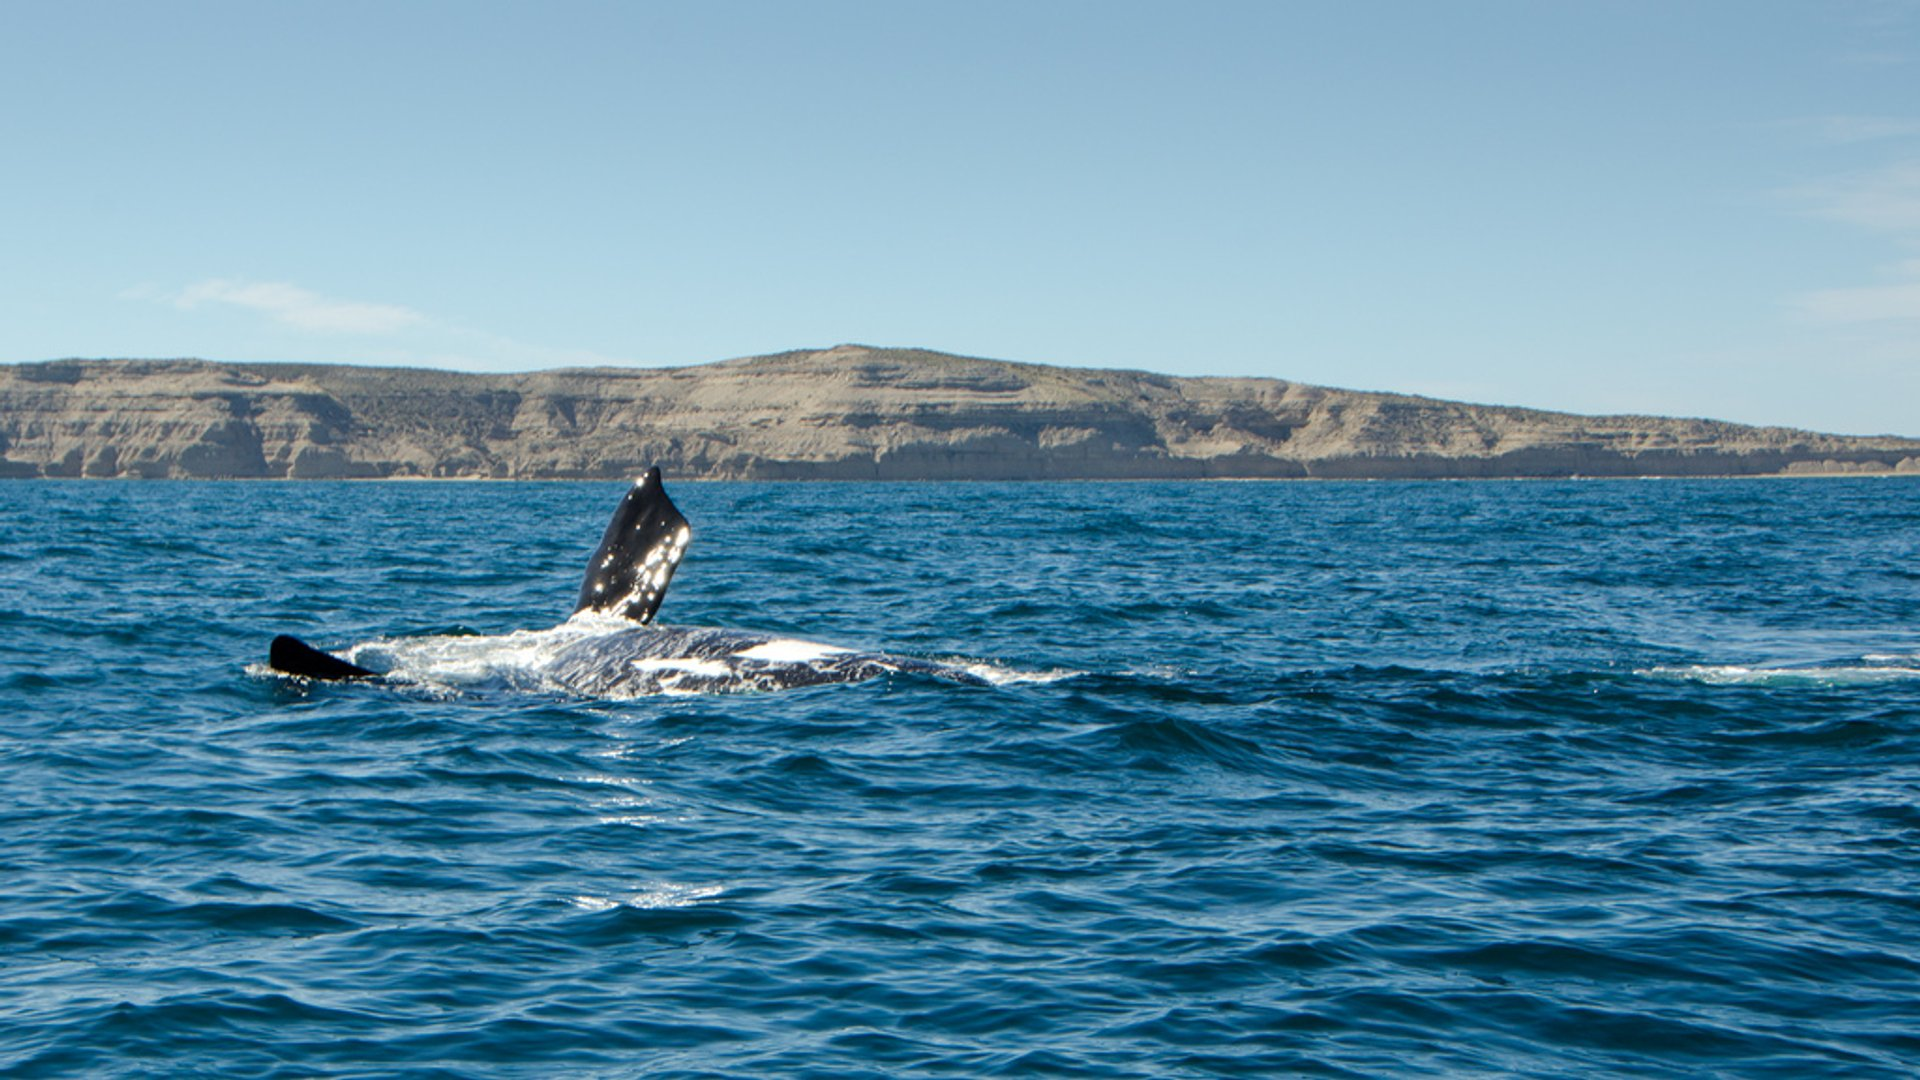 Southern Right Whale Watching in Argentina - Best Season 2020